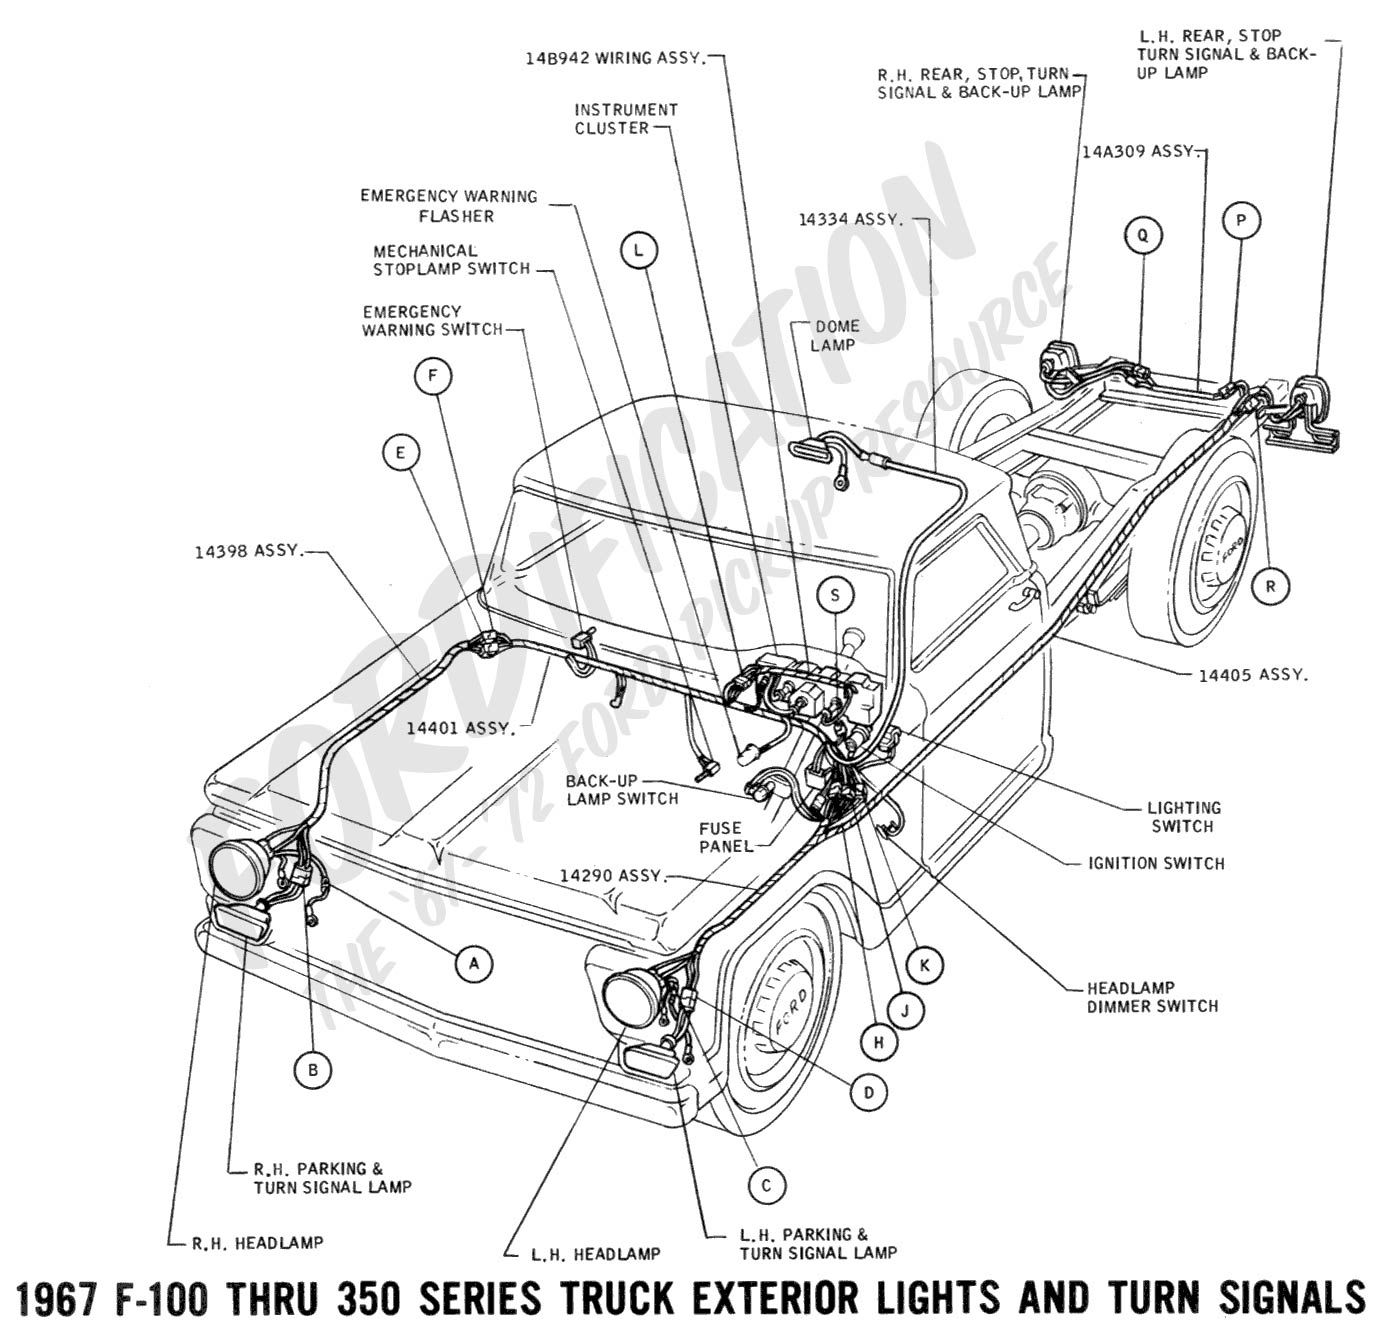 1994 Ford F150 Tail Light Wiring Diagram : 40 Wiring